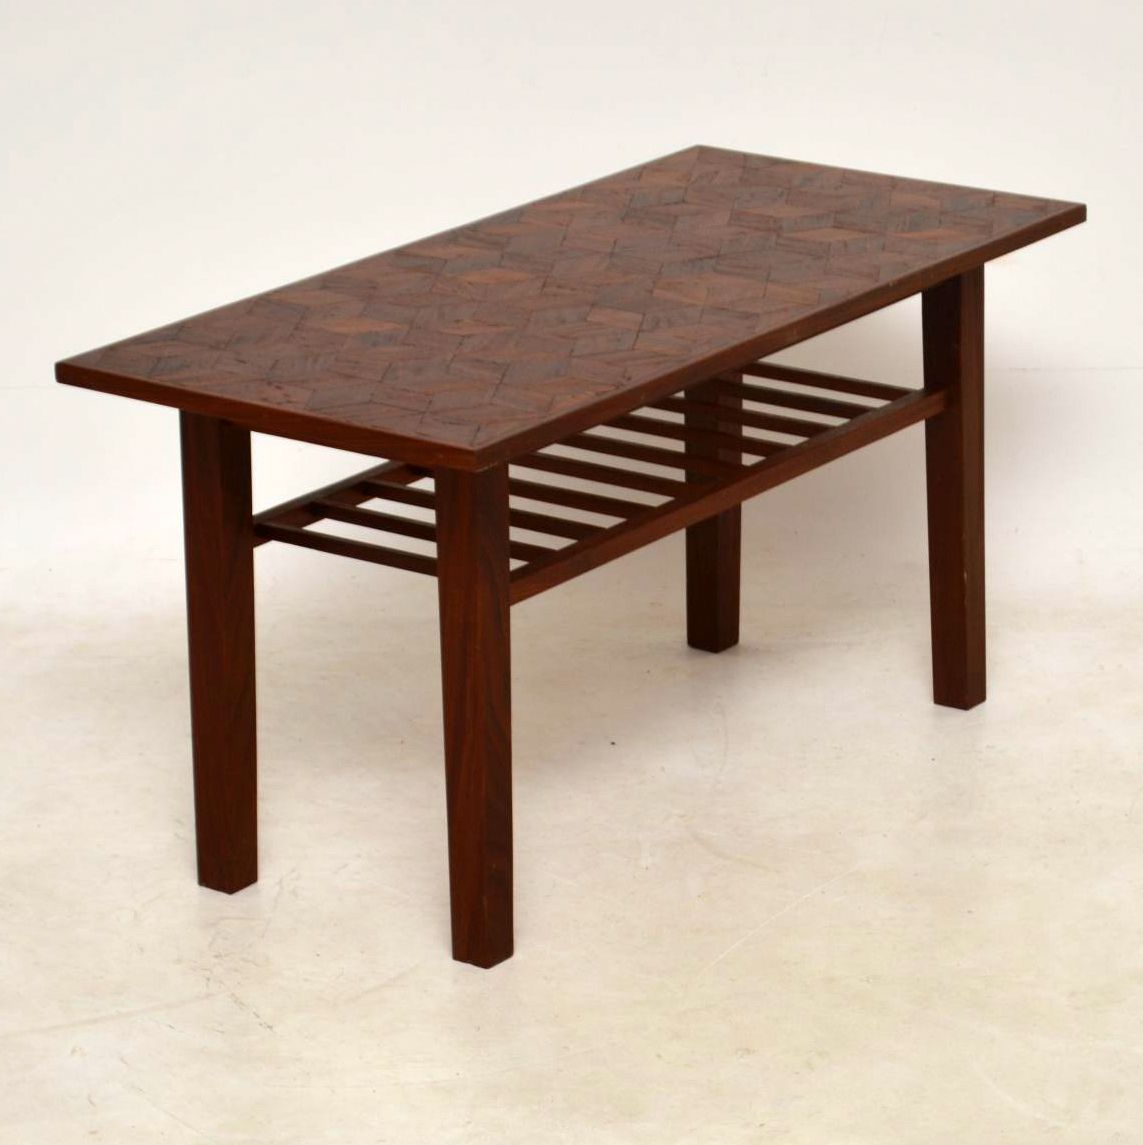 Second Hand Teak Coffee Table: 1960's Teak Vintage Coffee Table With Parquetry Top